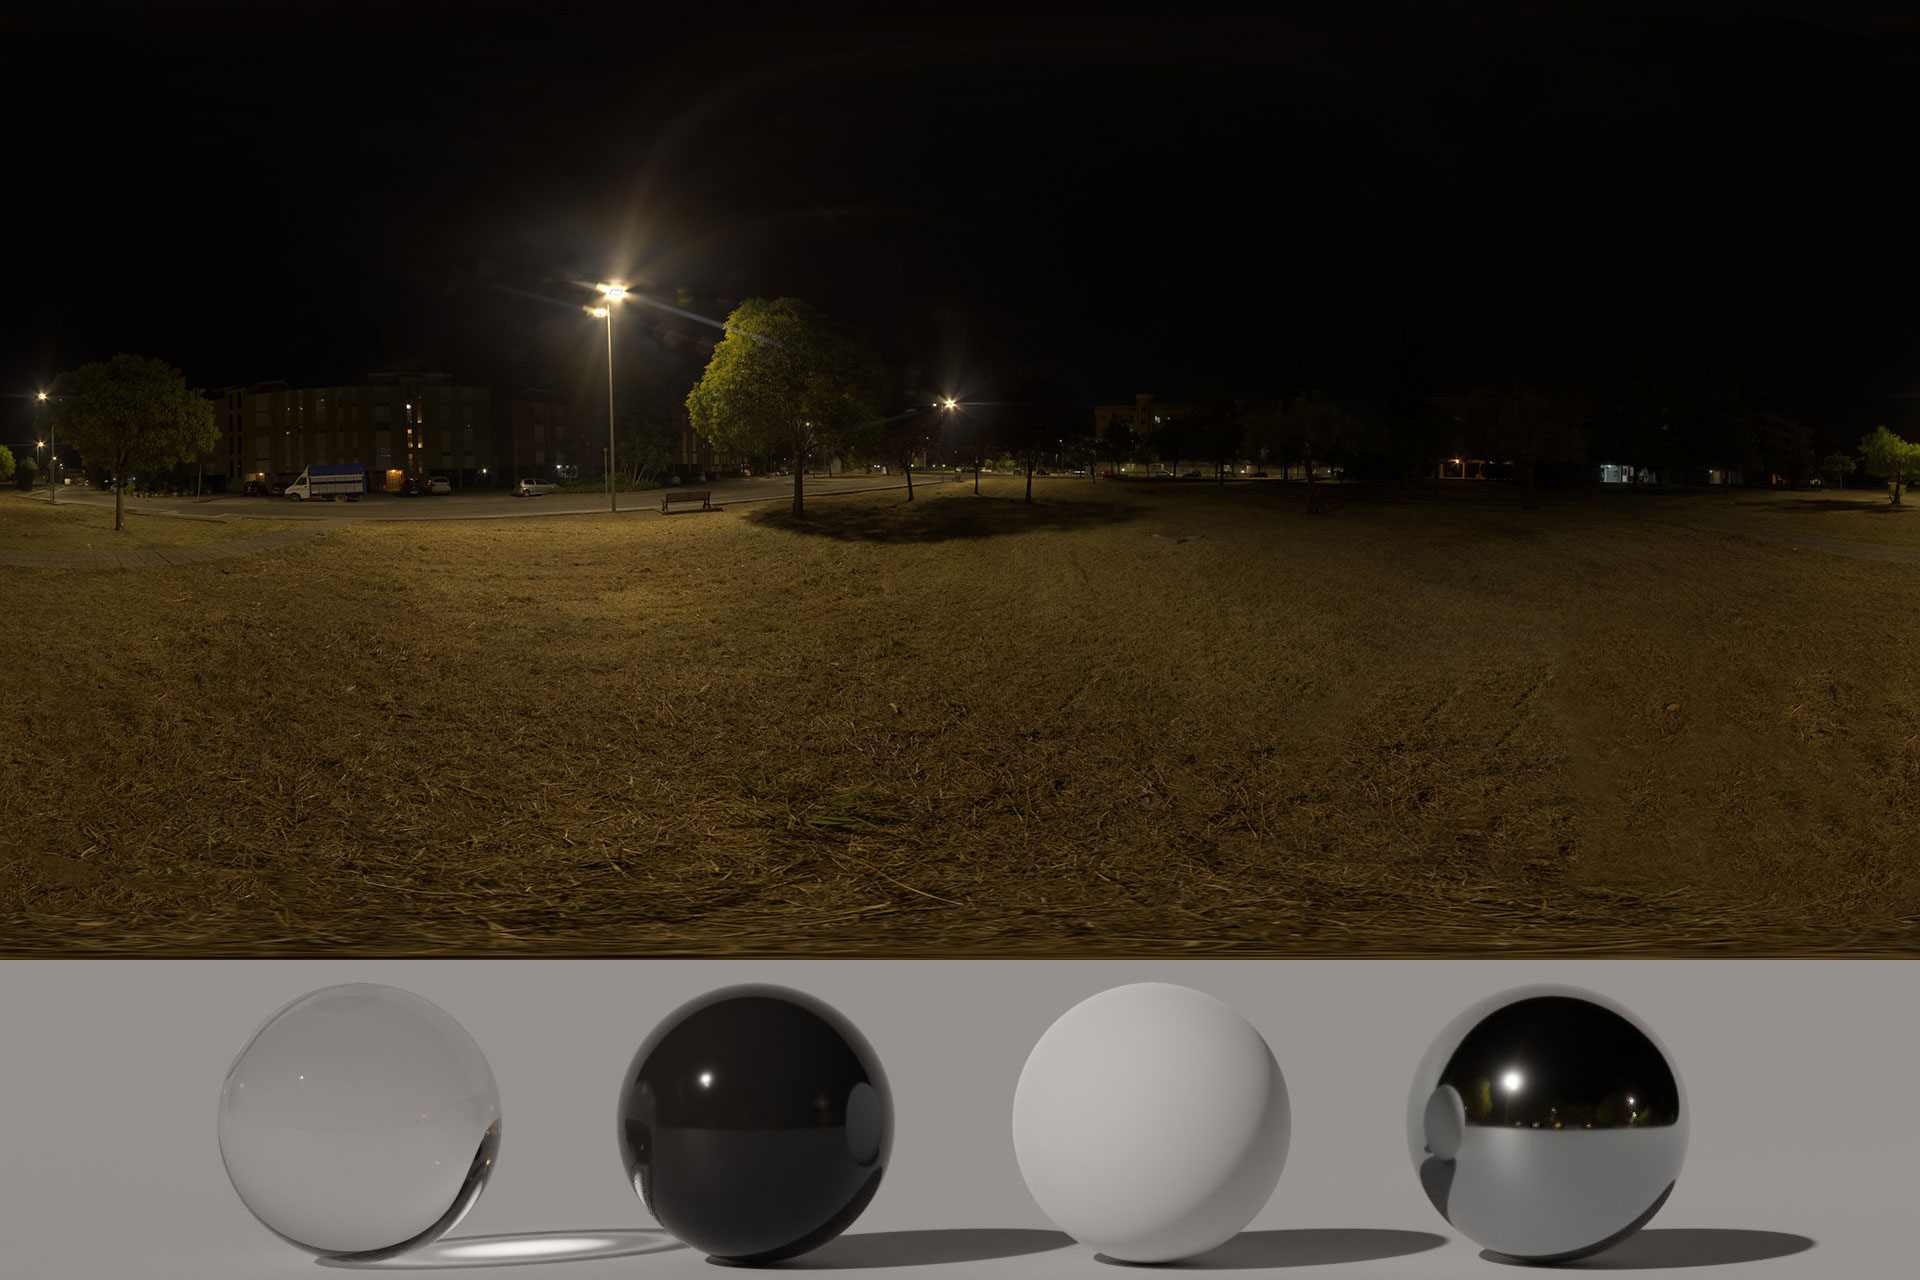 HDRi – Buildings, Trees And Night